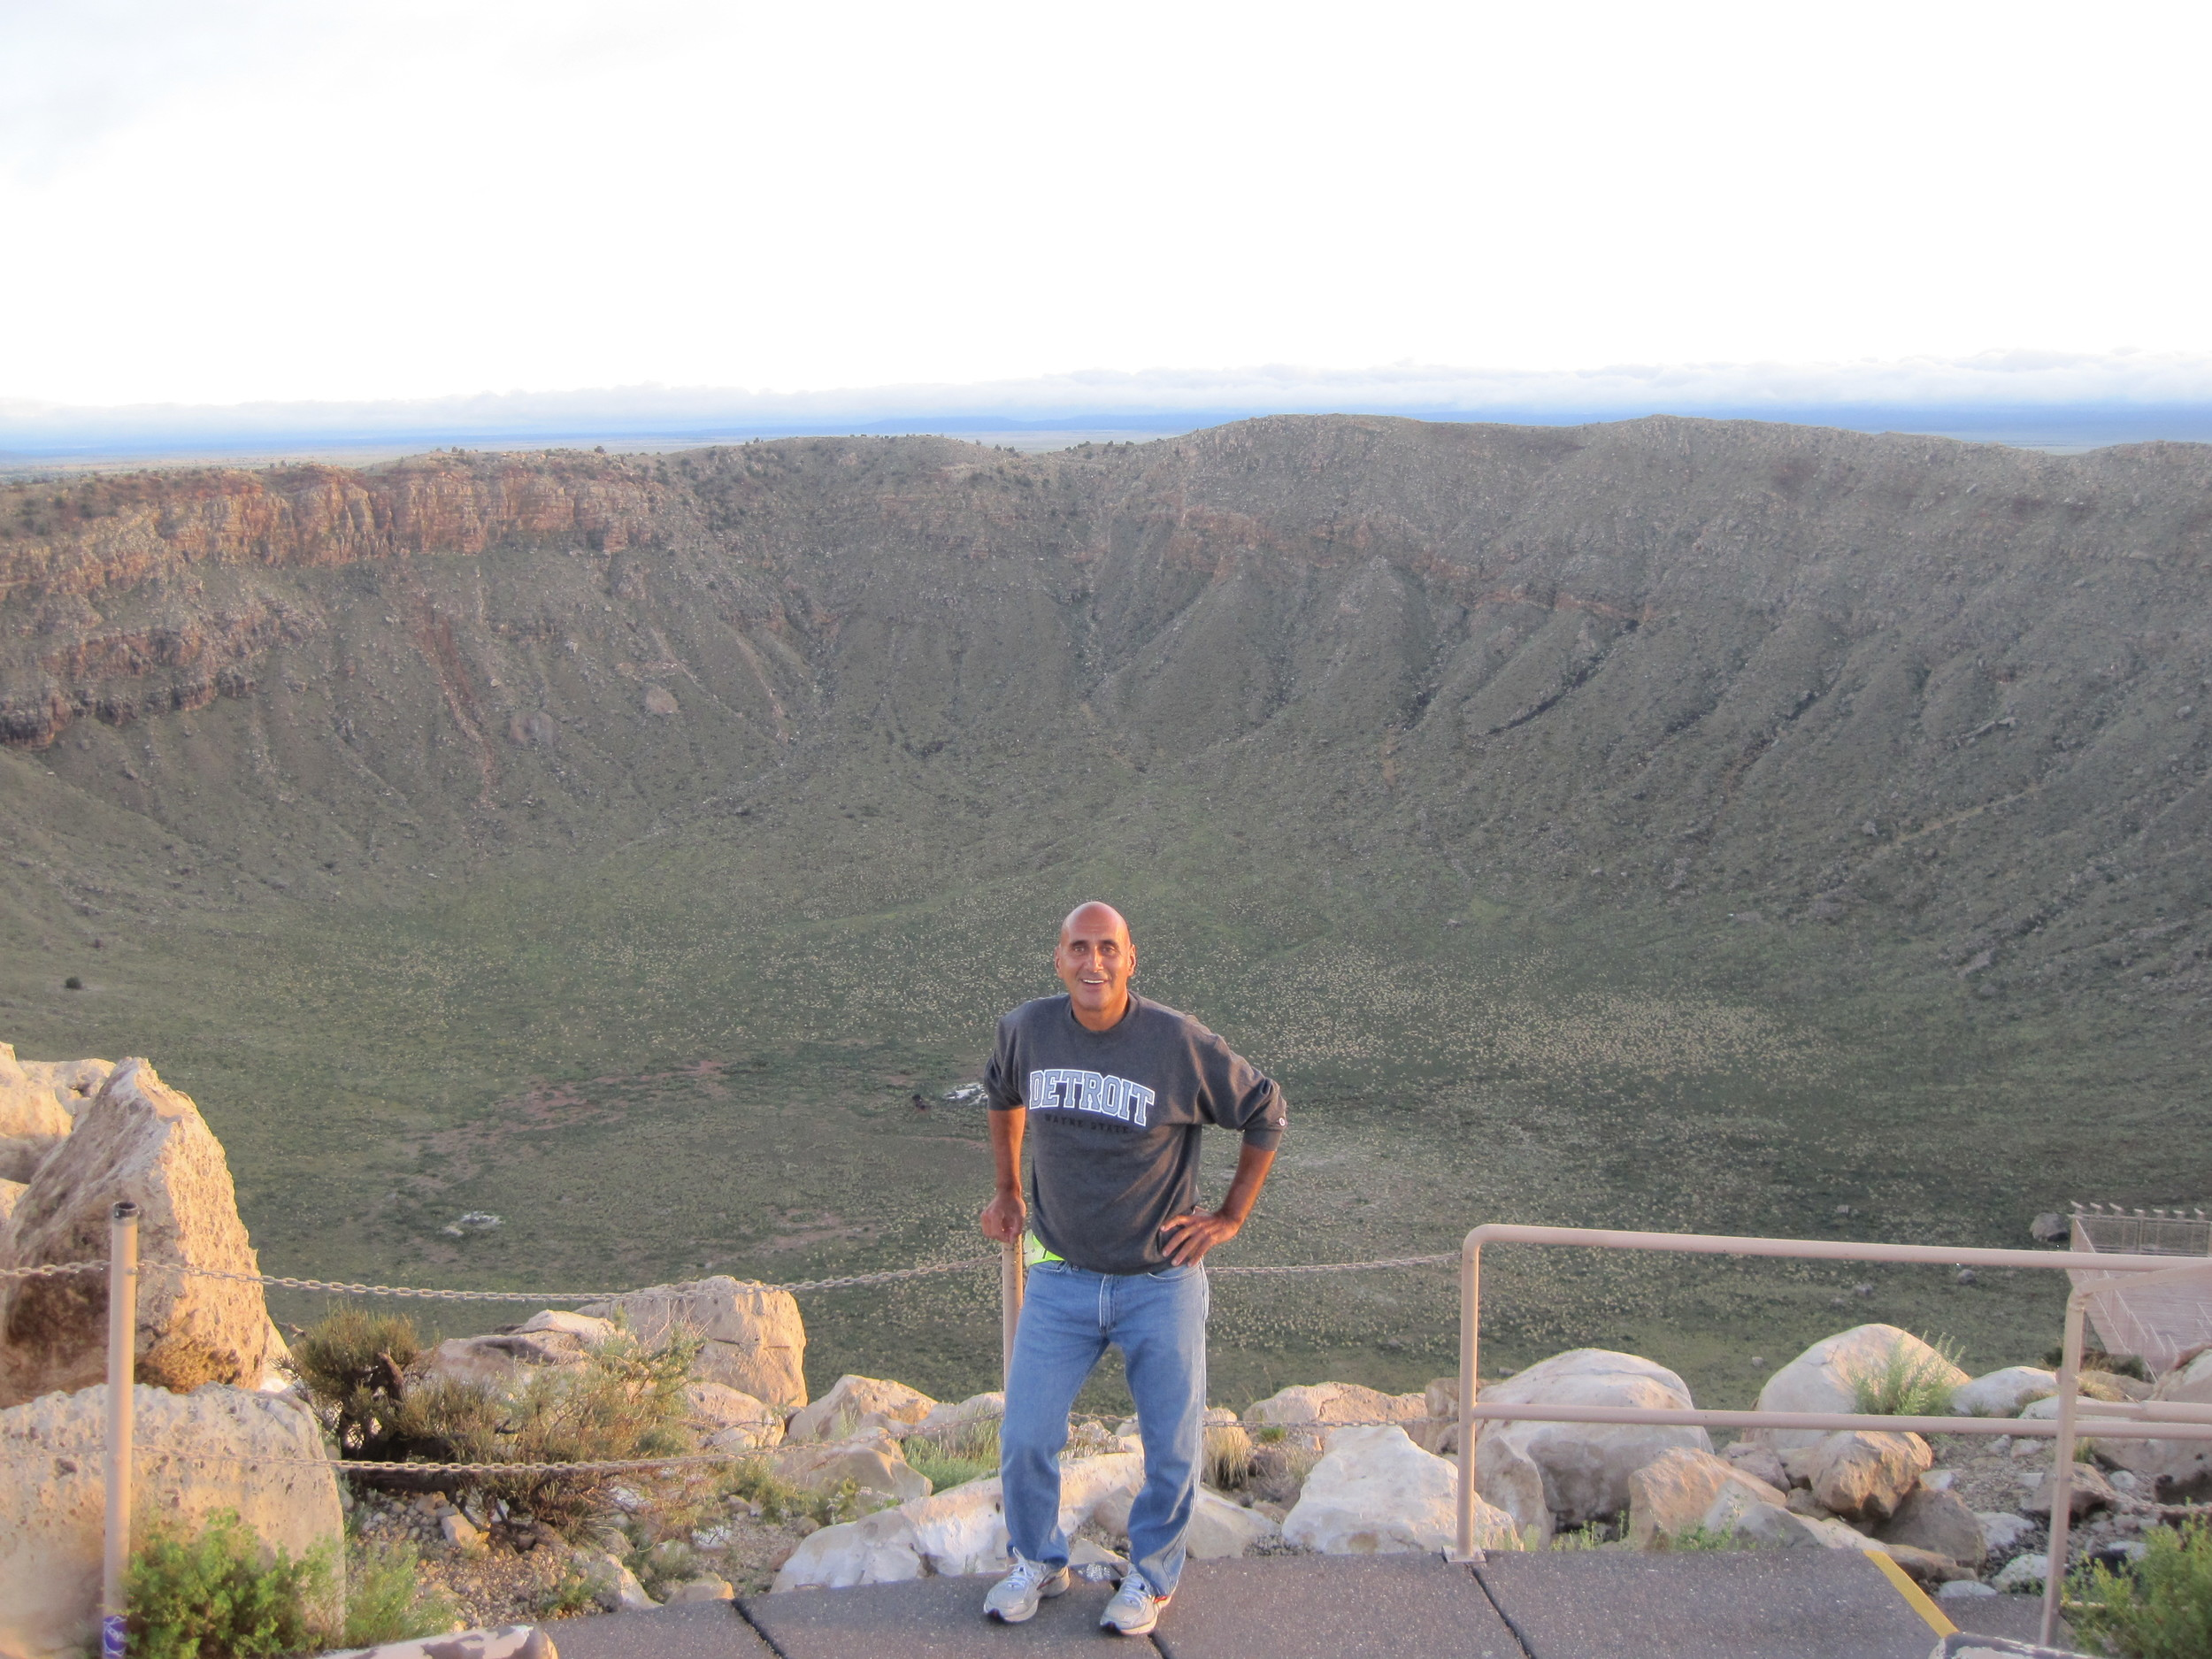 Meteor Crater and me. This is what a twenty megaton bomb could do